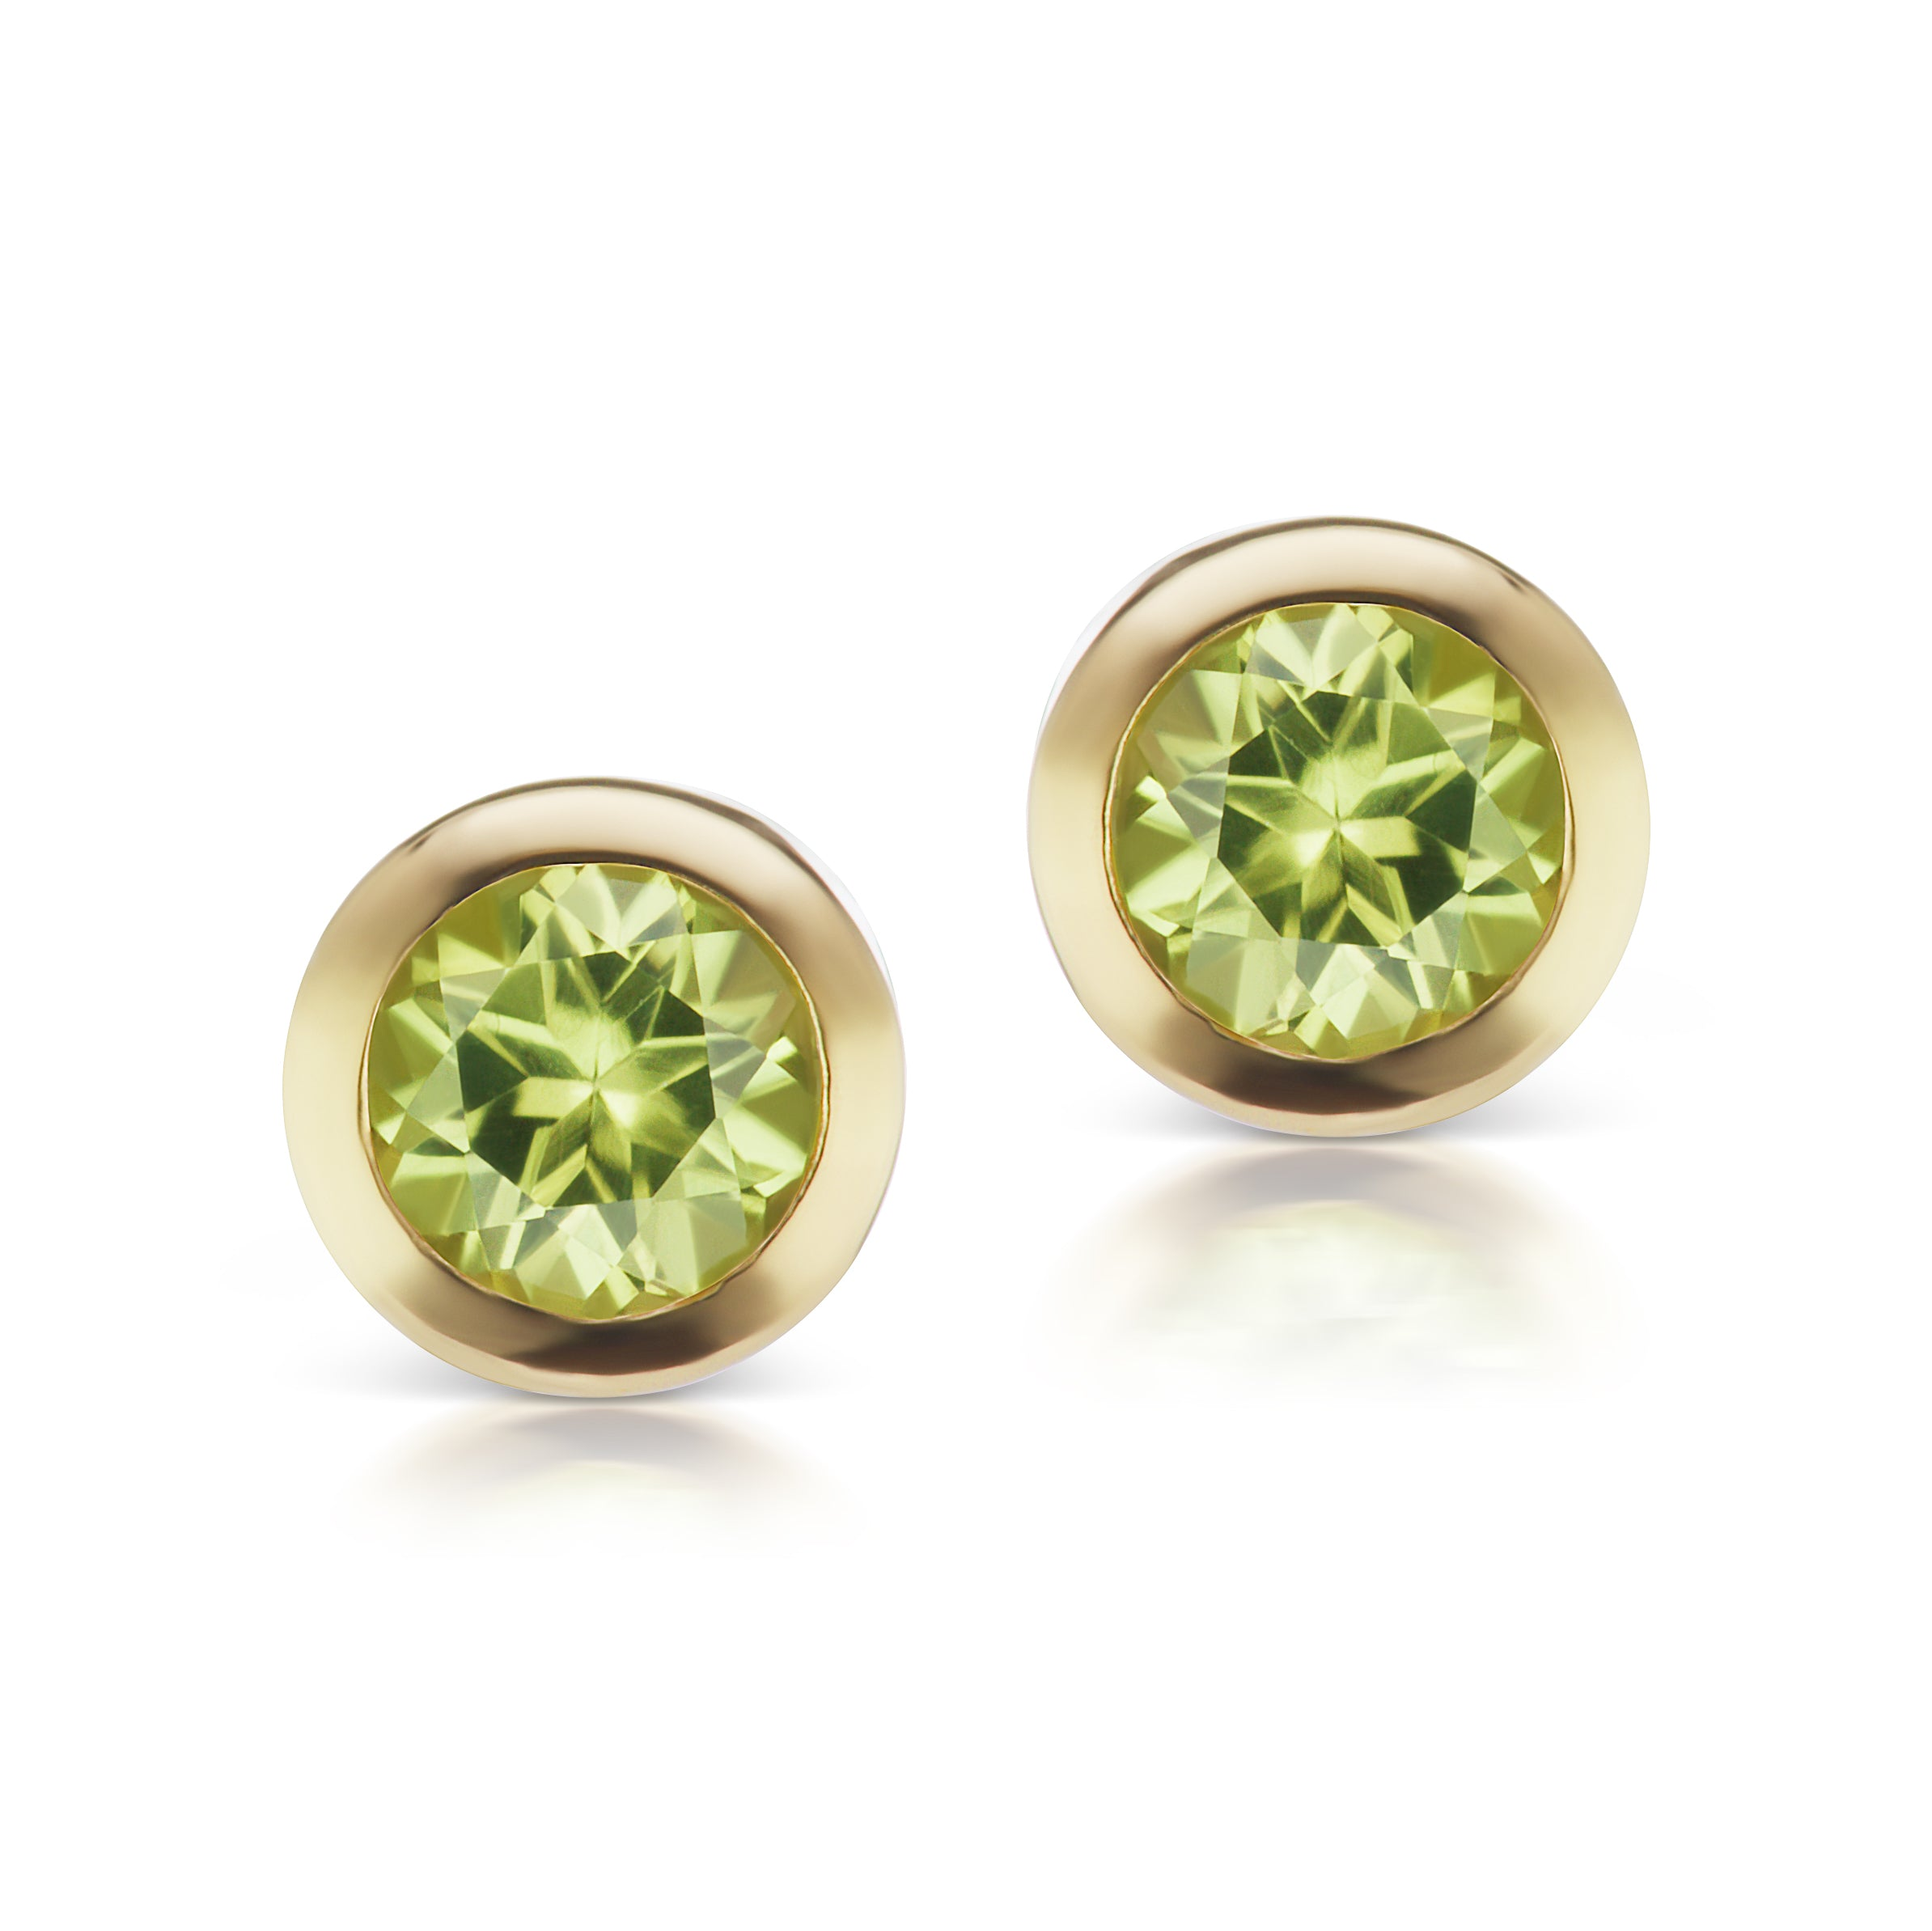 The Gold Birthstone Confetti Studs